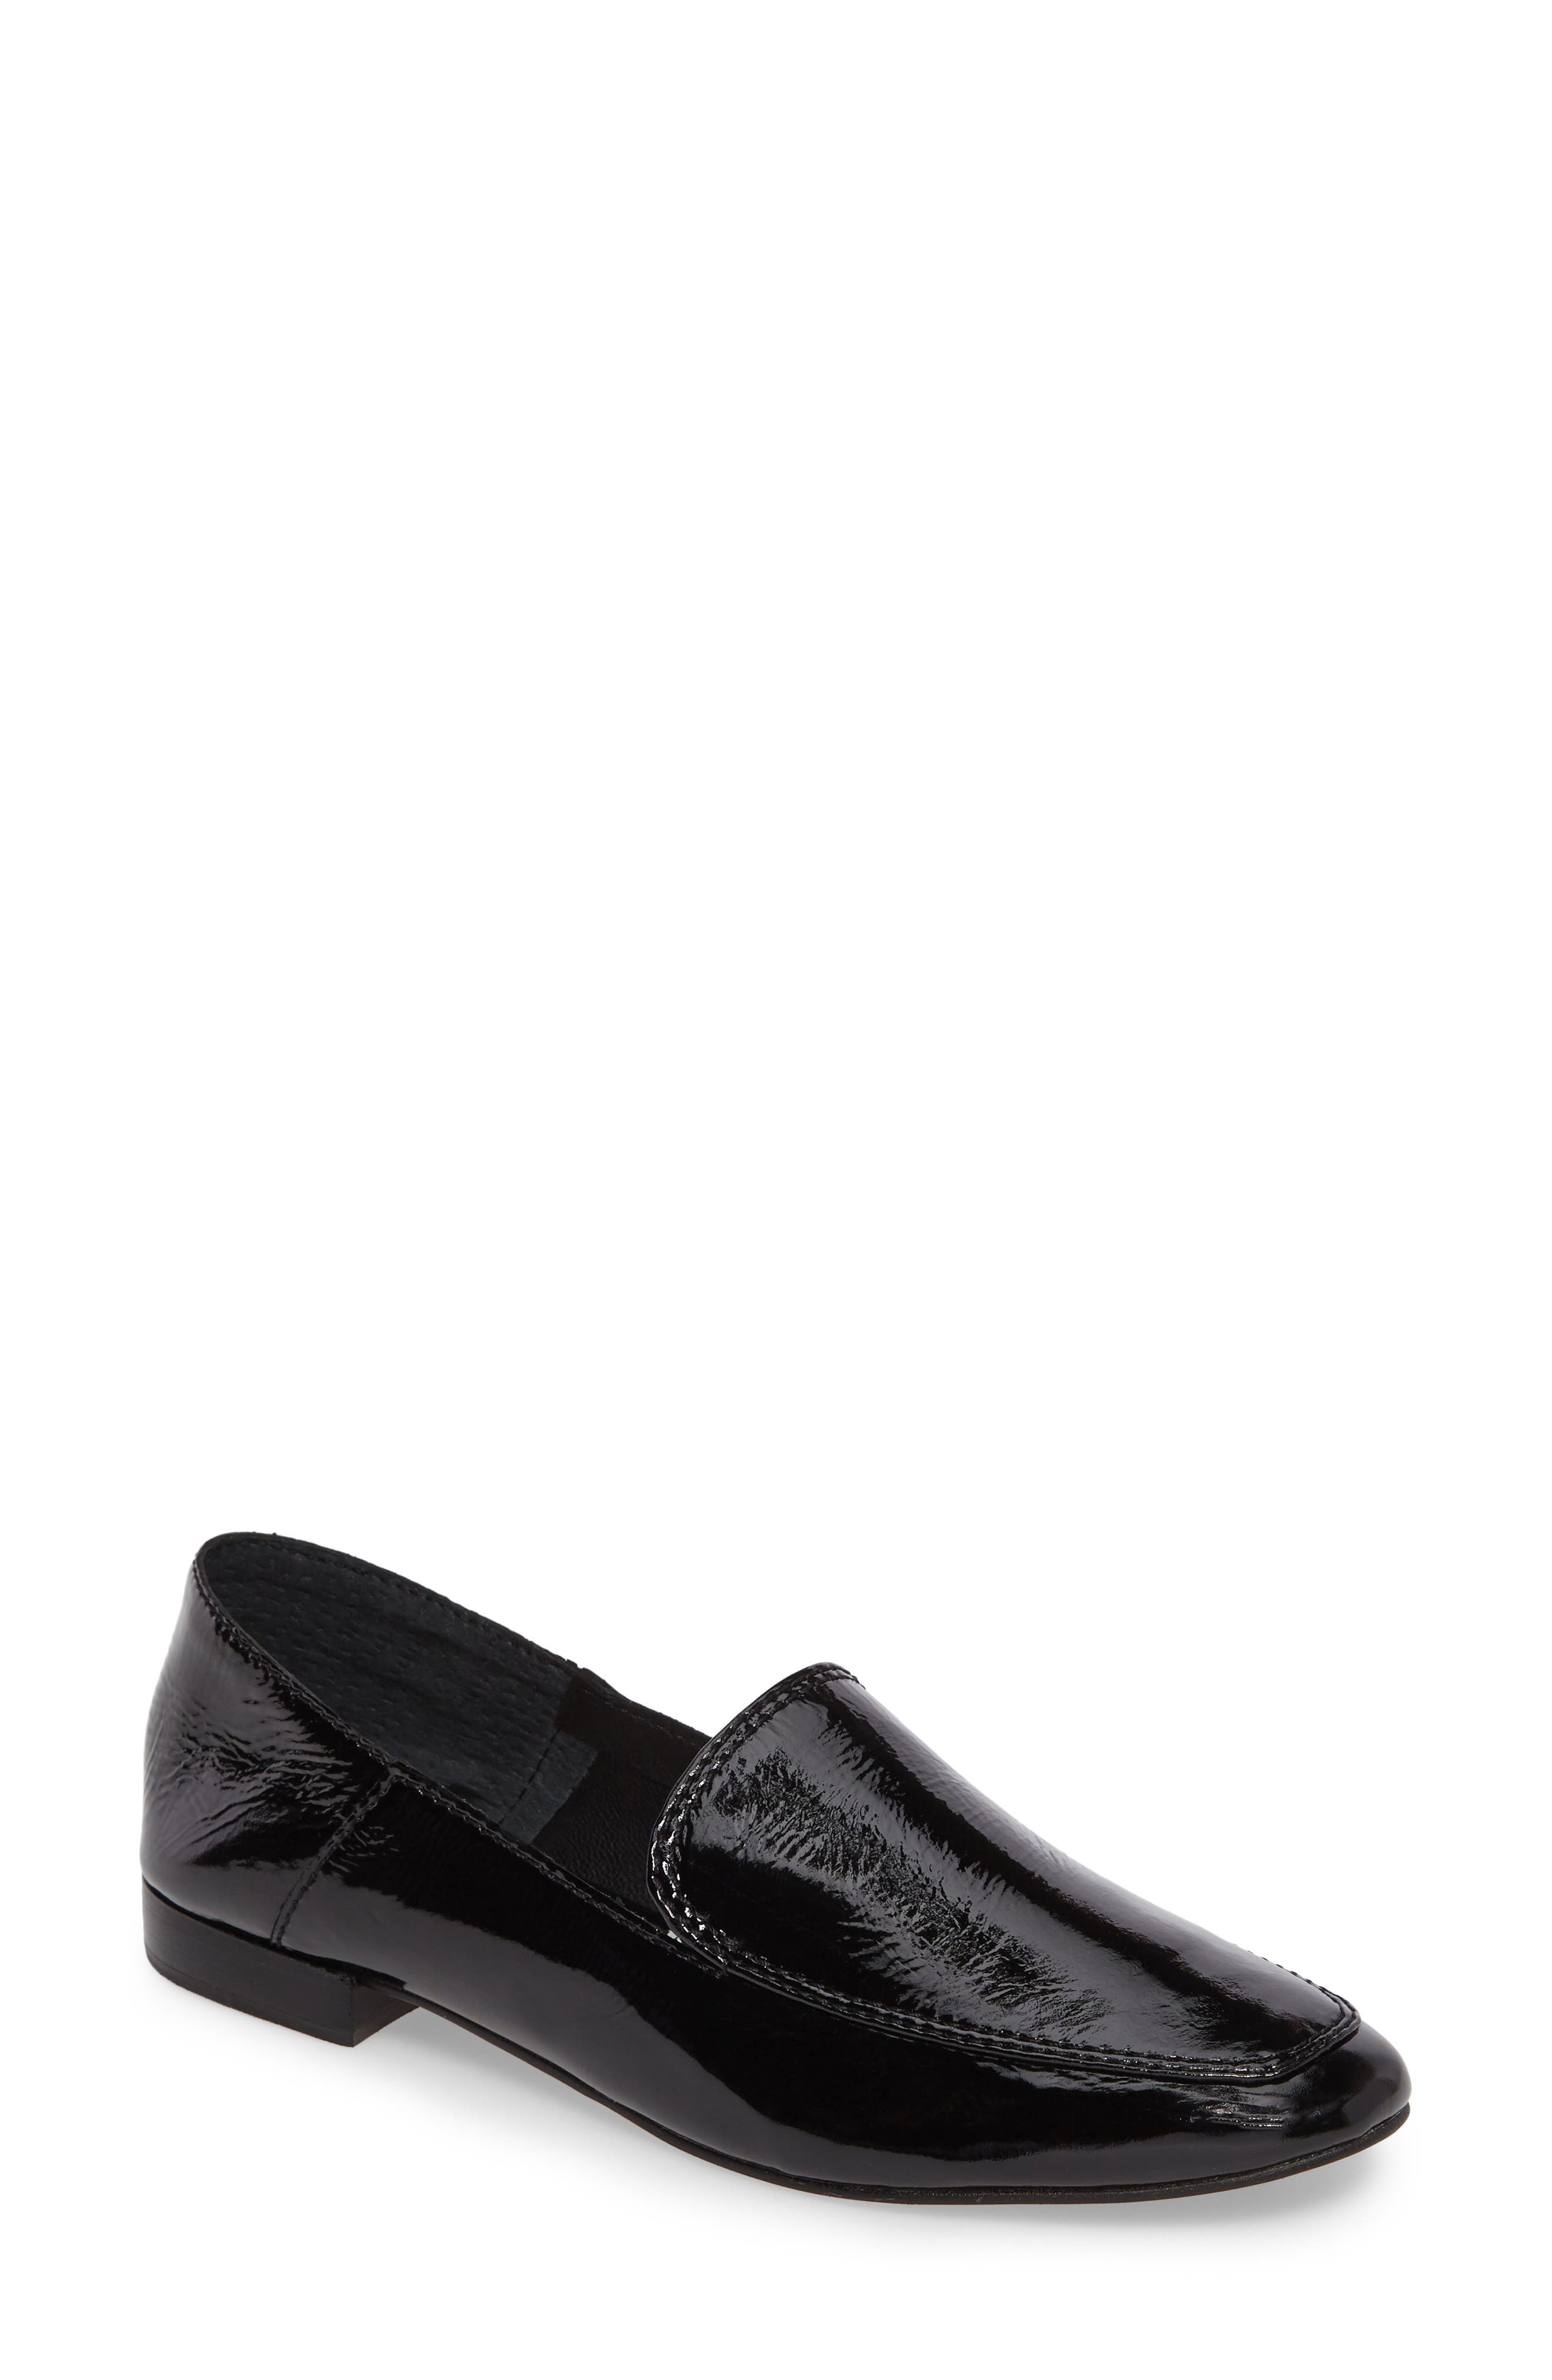 Camden Loafer,                             Main thumbnail 1, color,                             002